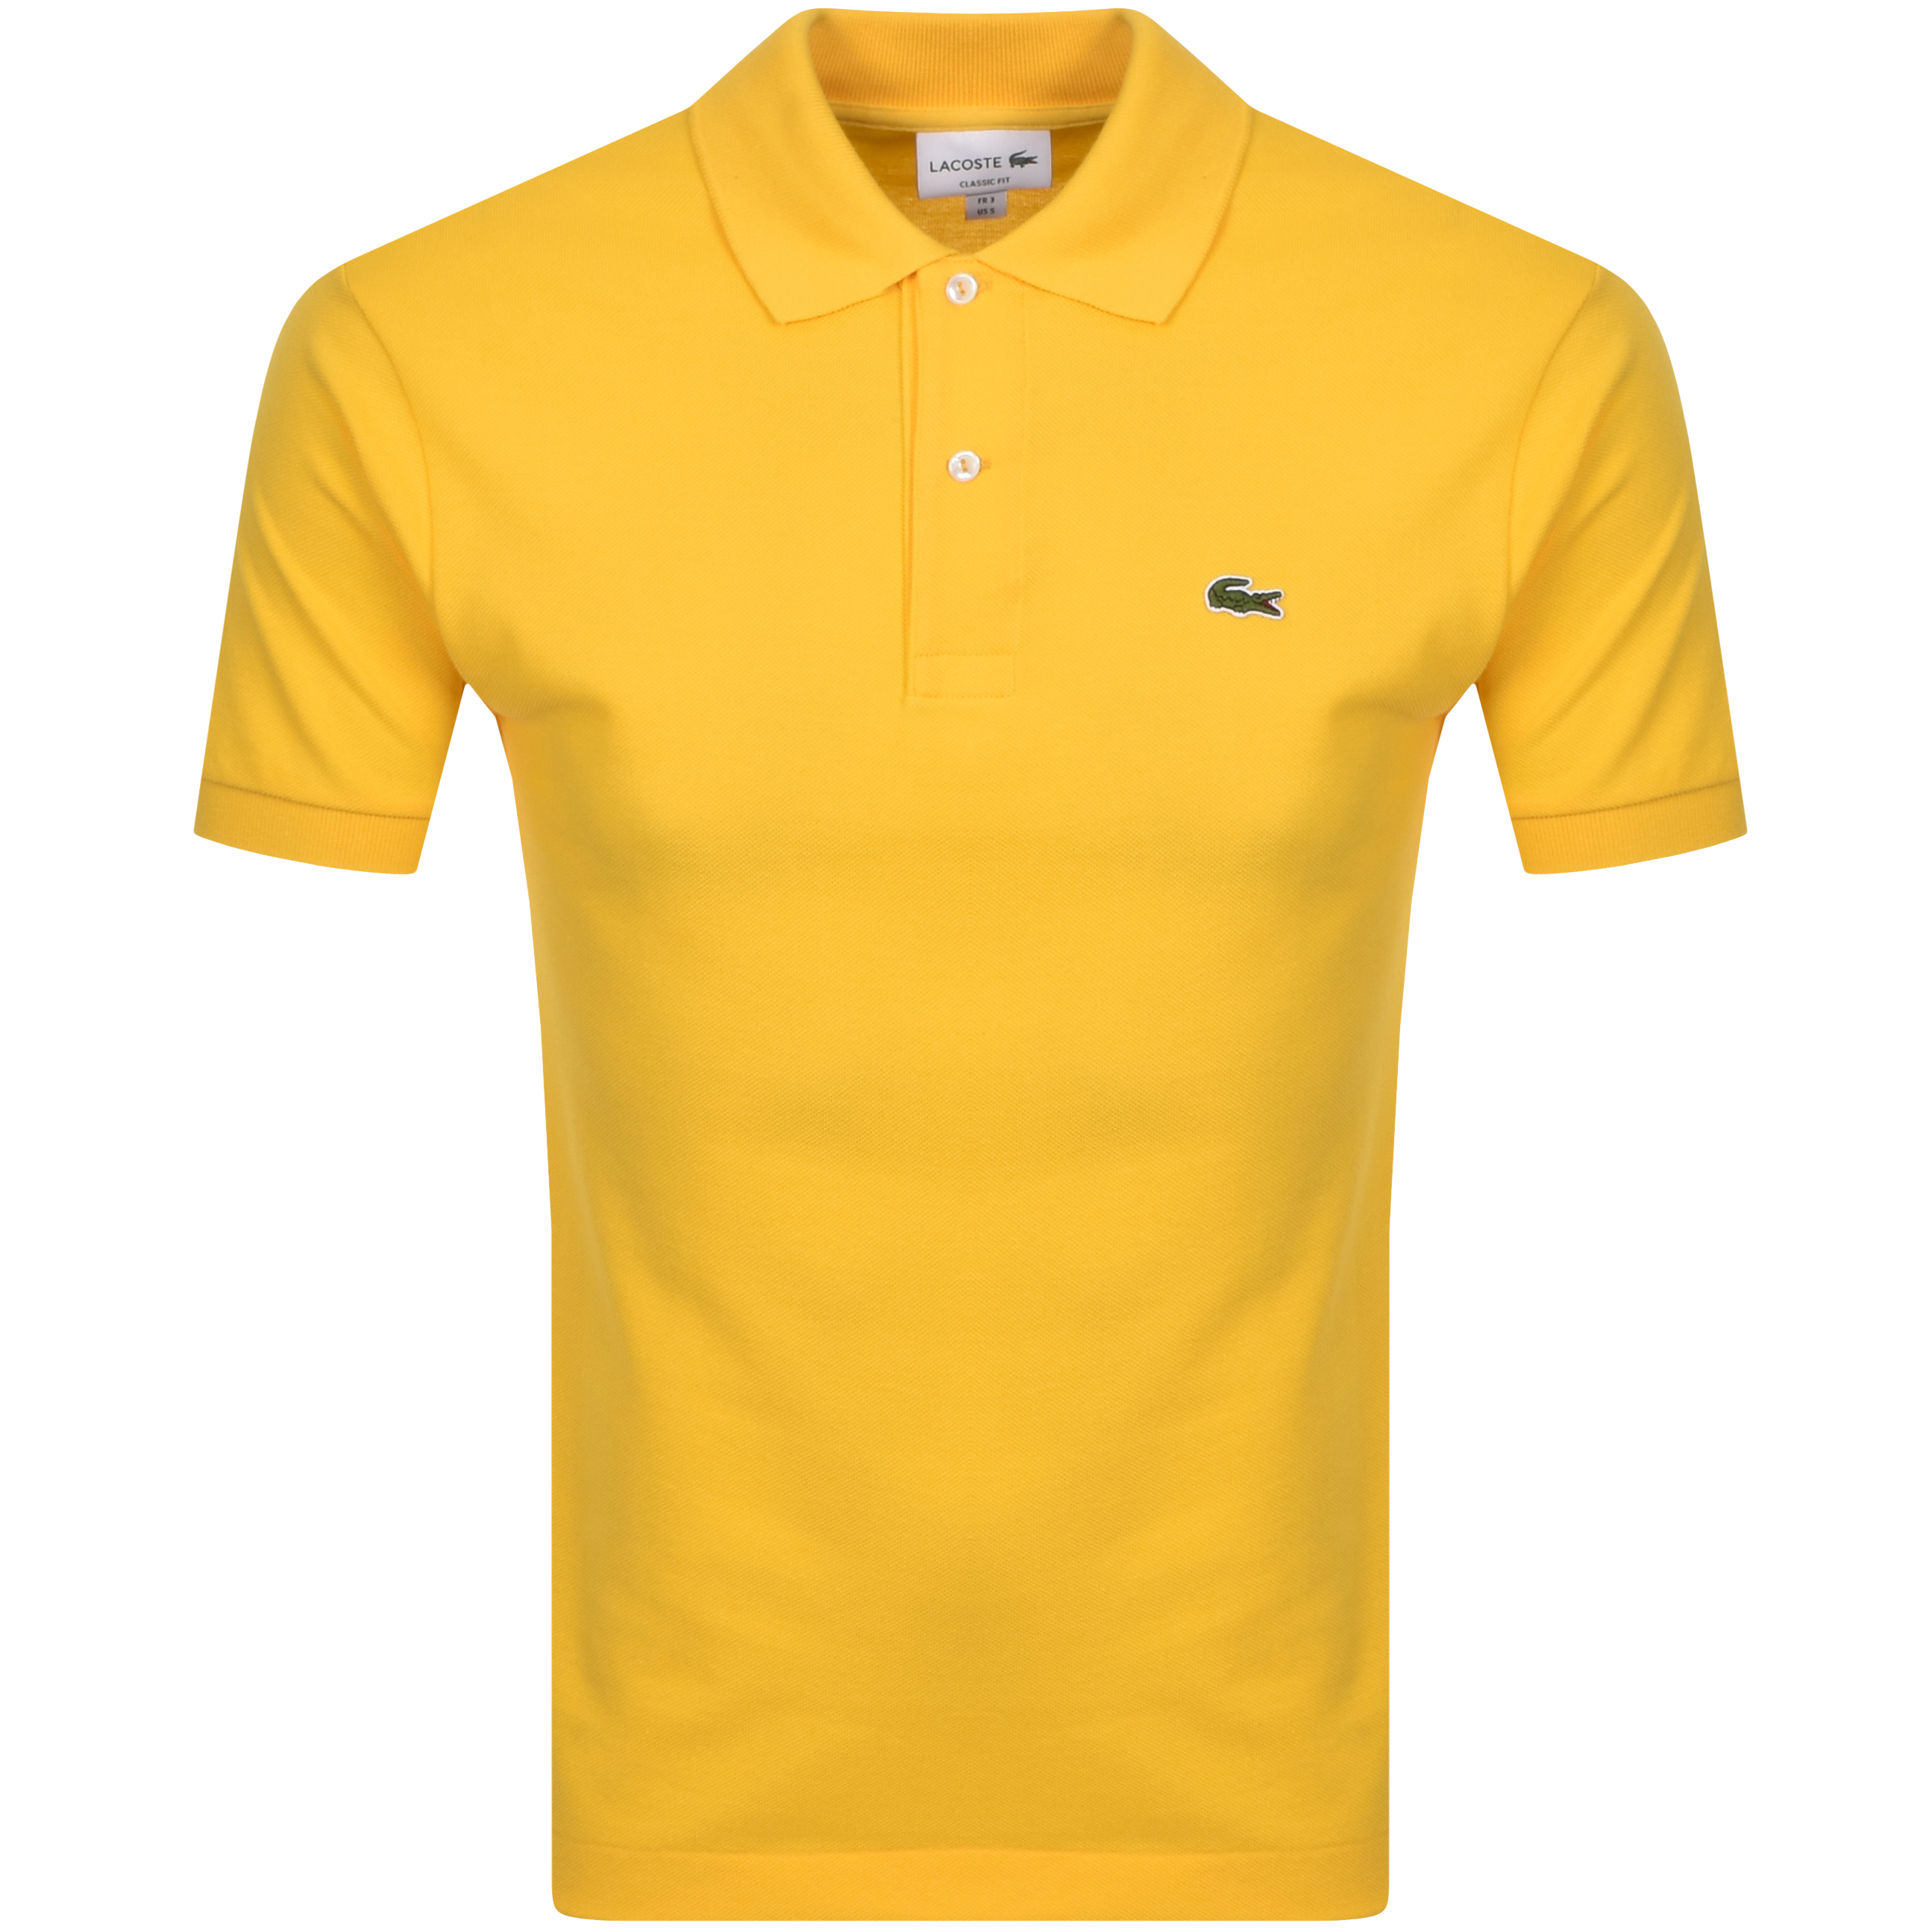 Lacoste Short Sleeved Polo T Shirt Yellow